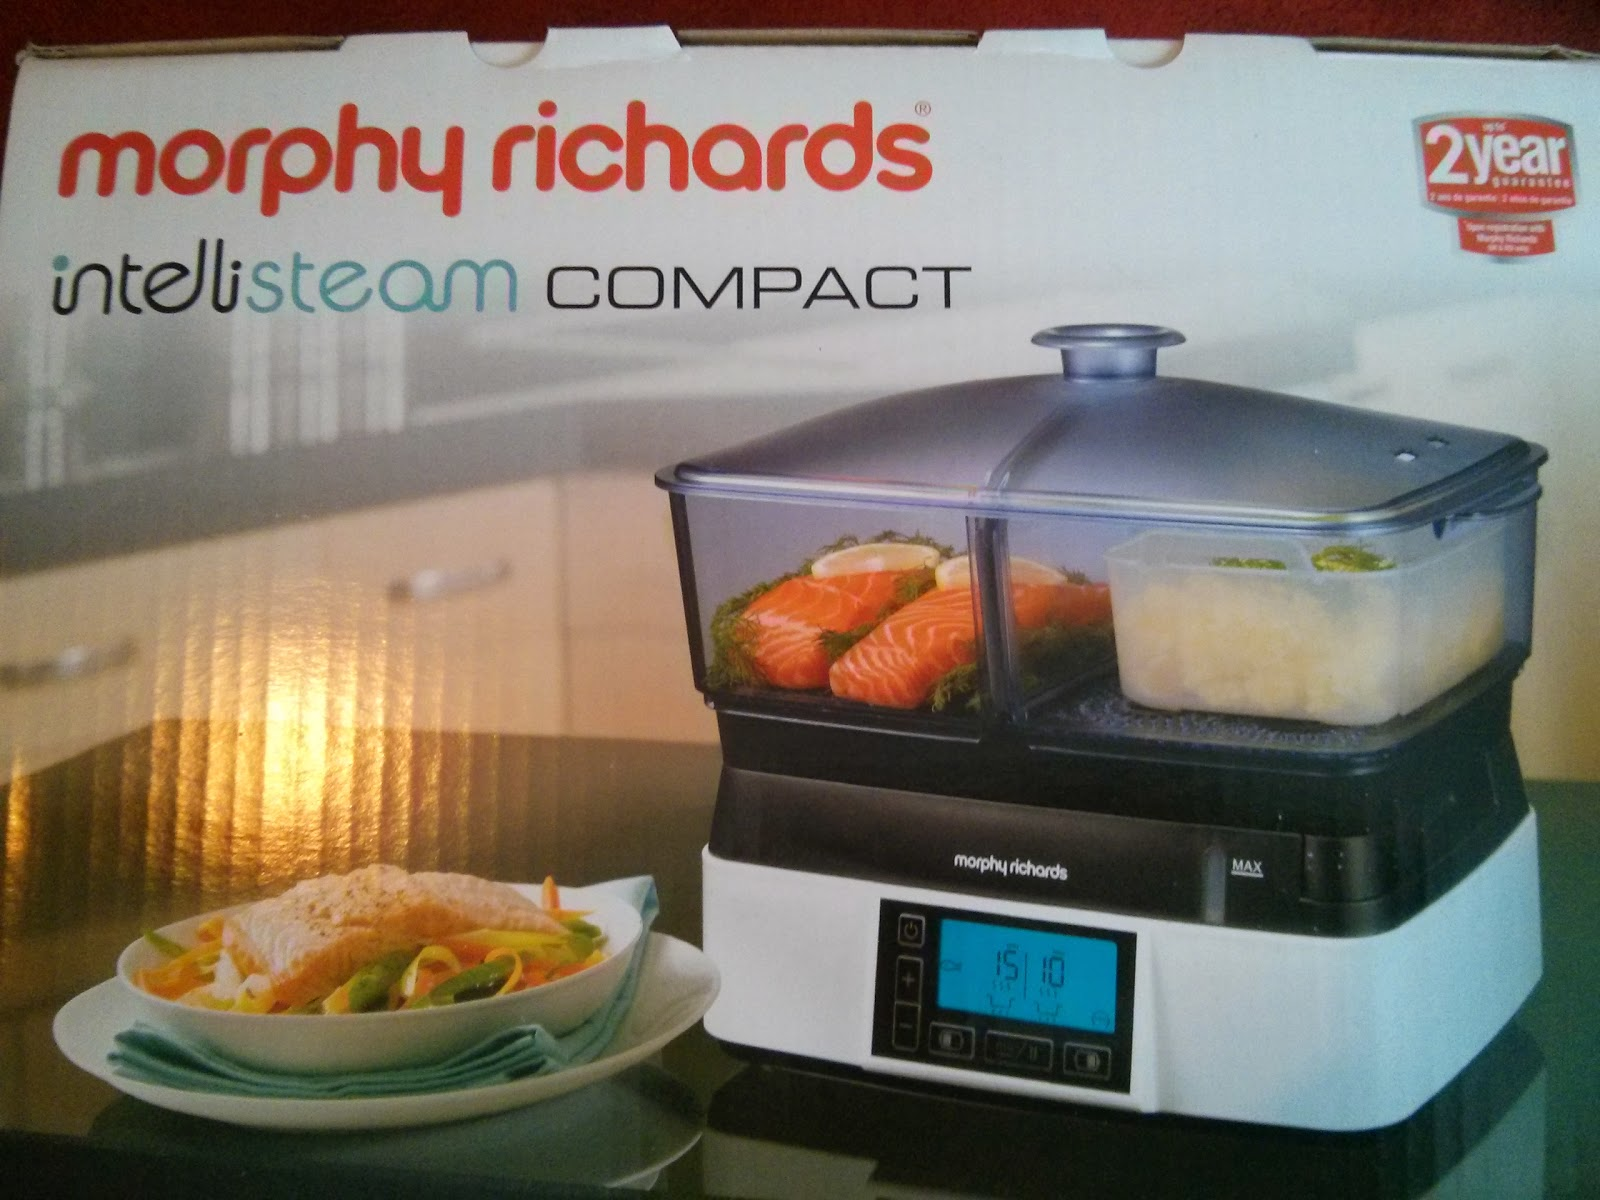 The Morphy Richards Compact Intellisteam Food Steamer box